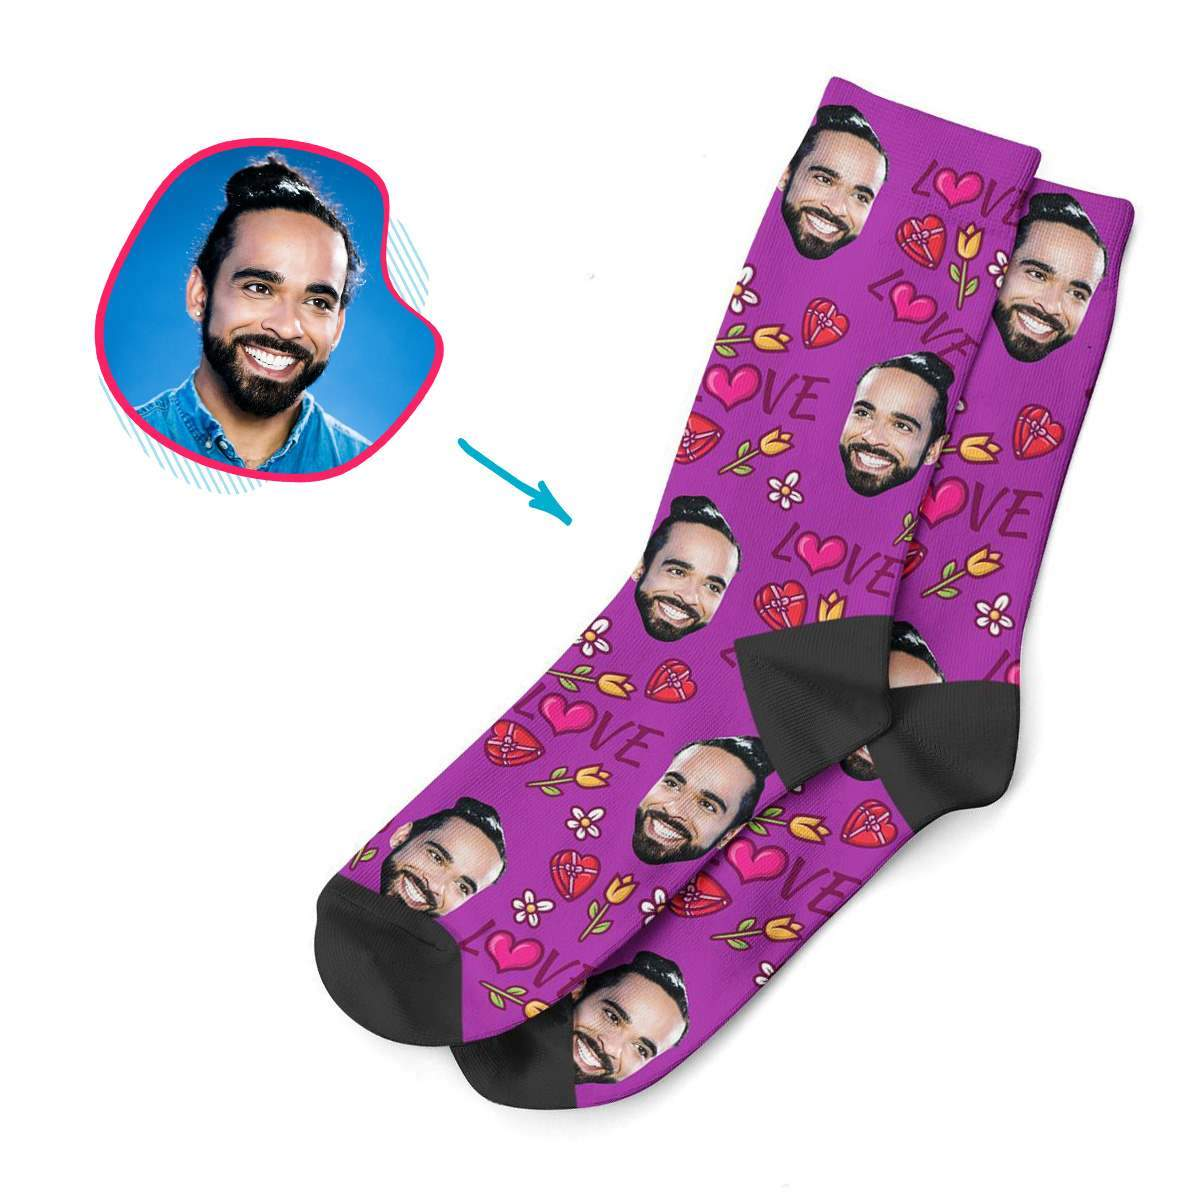 purple Hearts and Flowers socks personalized with photo of face printed on them